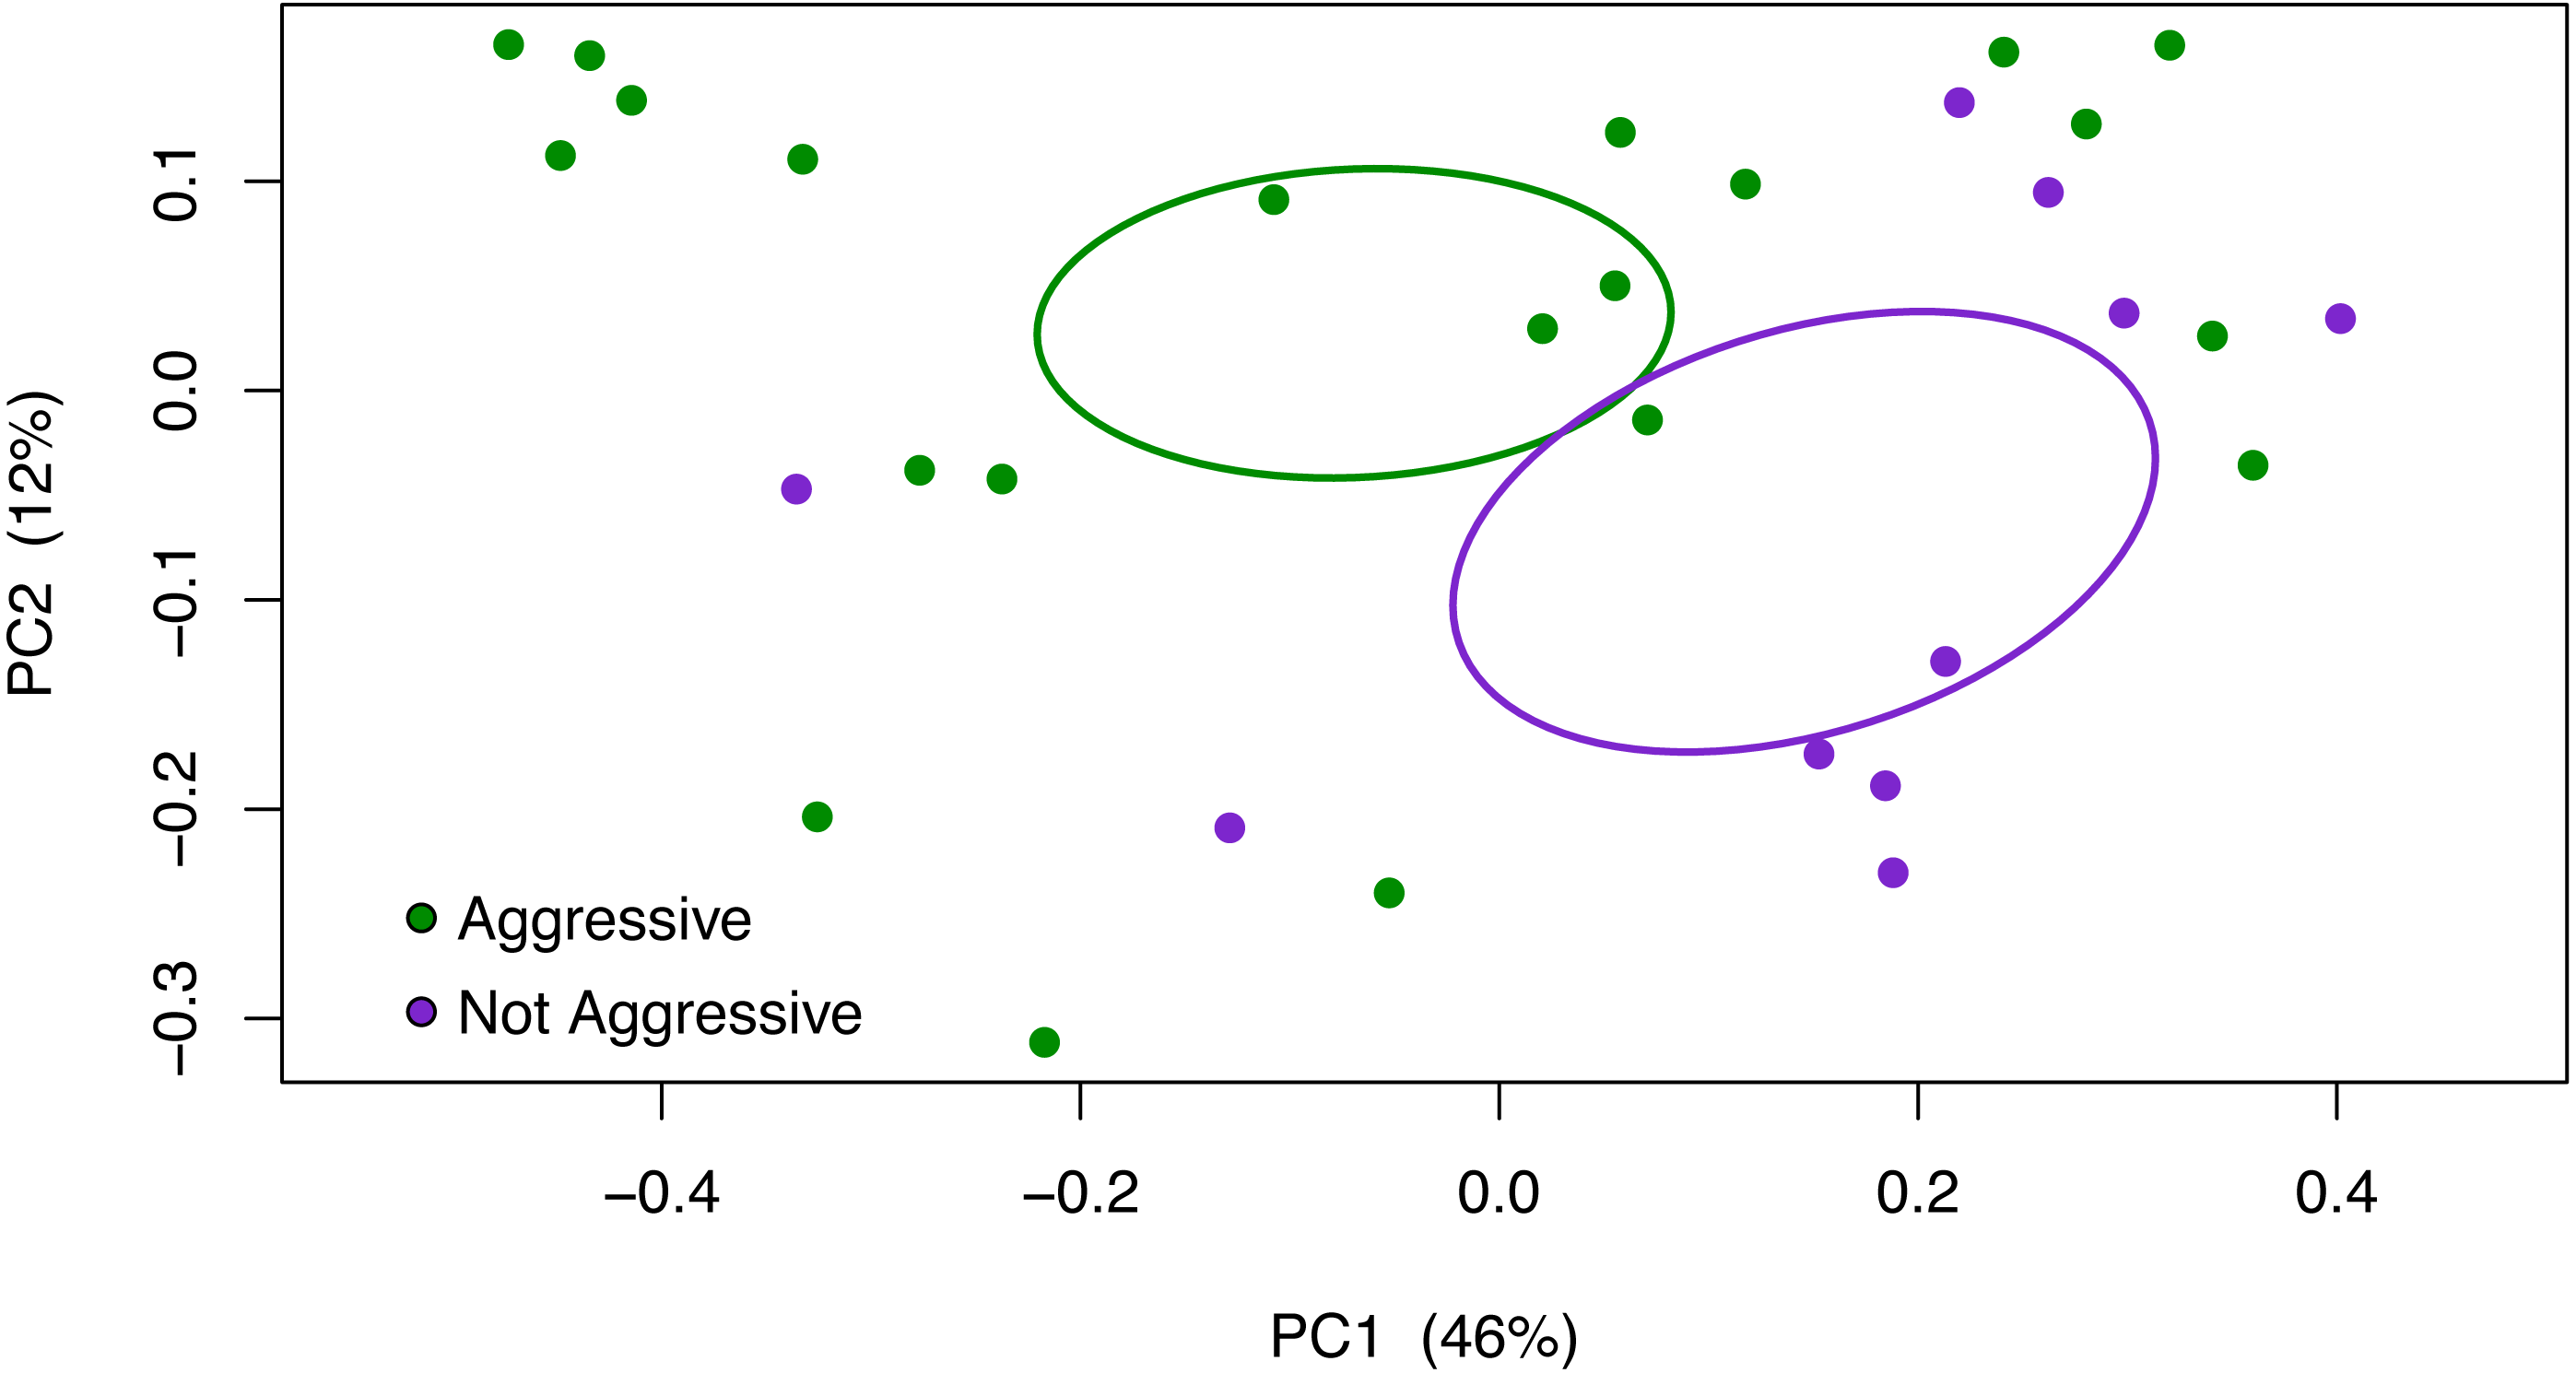 The gut microbiome correlates with conspecific aggression in